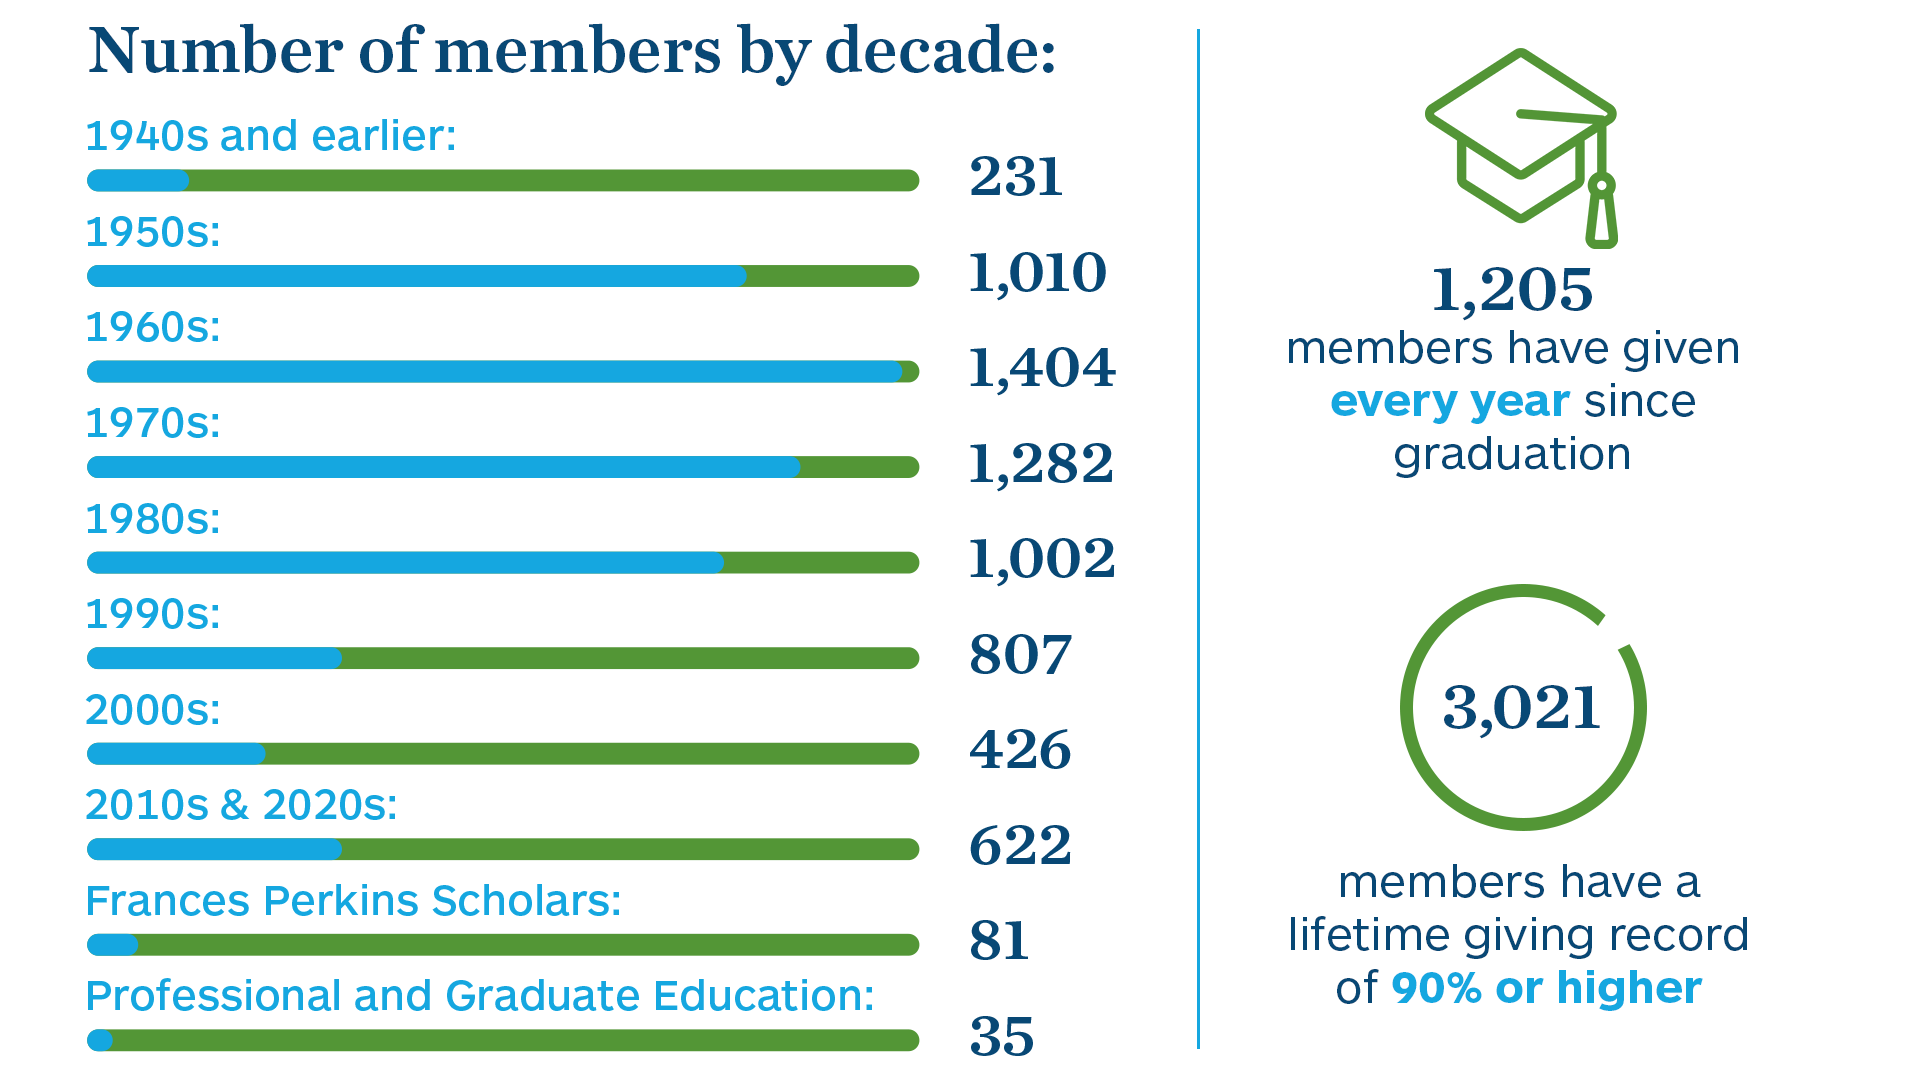 Members by decade: 1940s & earlier-231, 1950s-1010, 1960s-1404, 1970s-1282, 1980s-1002, 1990s-807, 2000s-426, 2010s & 2020s-622, FPs-81, PaGE-35   1,205 members have given every year since graduation   3,201 have a lifetime giving record of 90% or higher